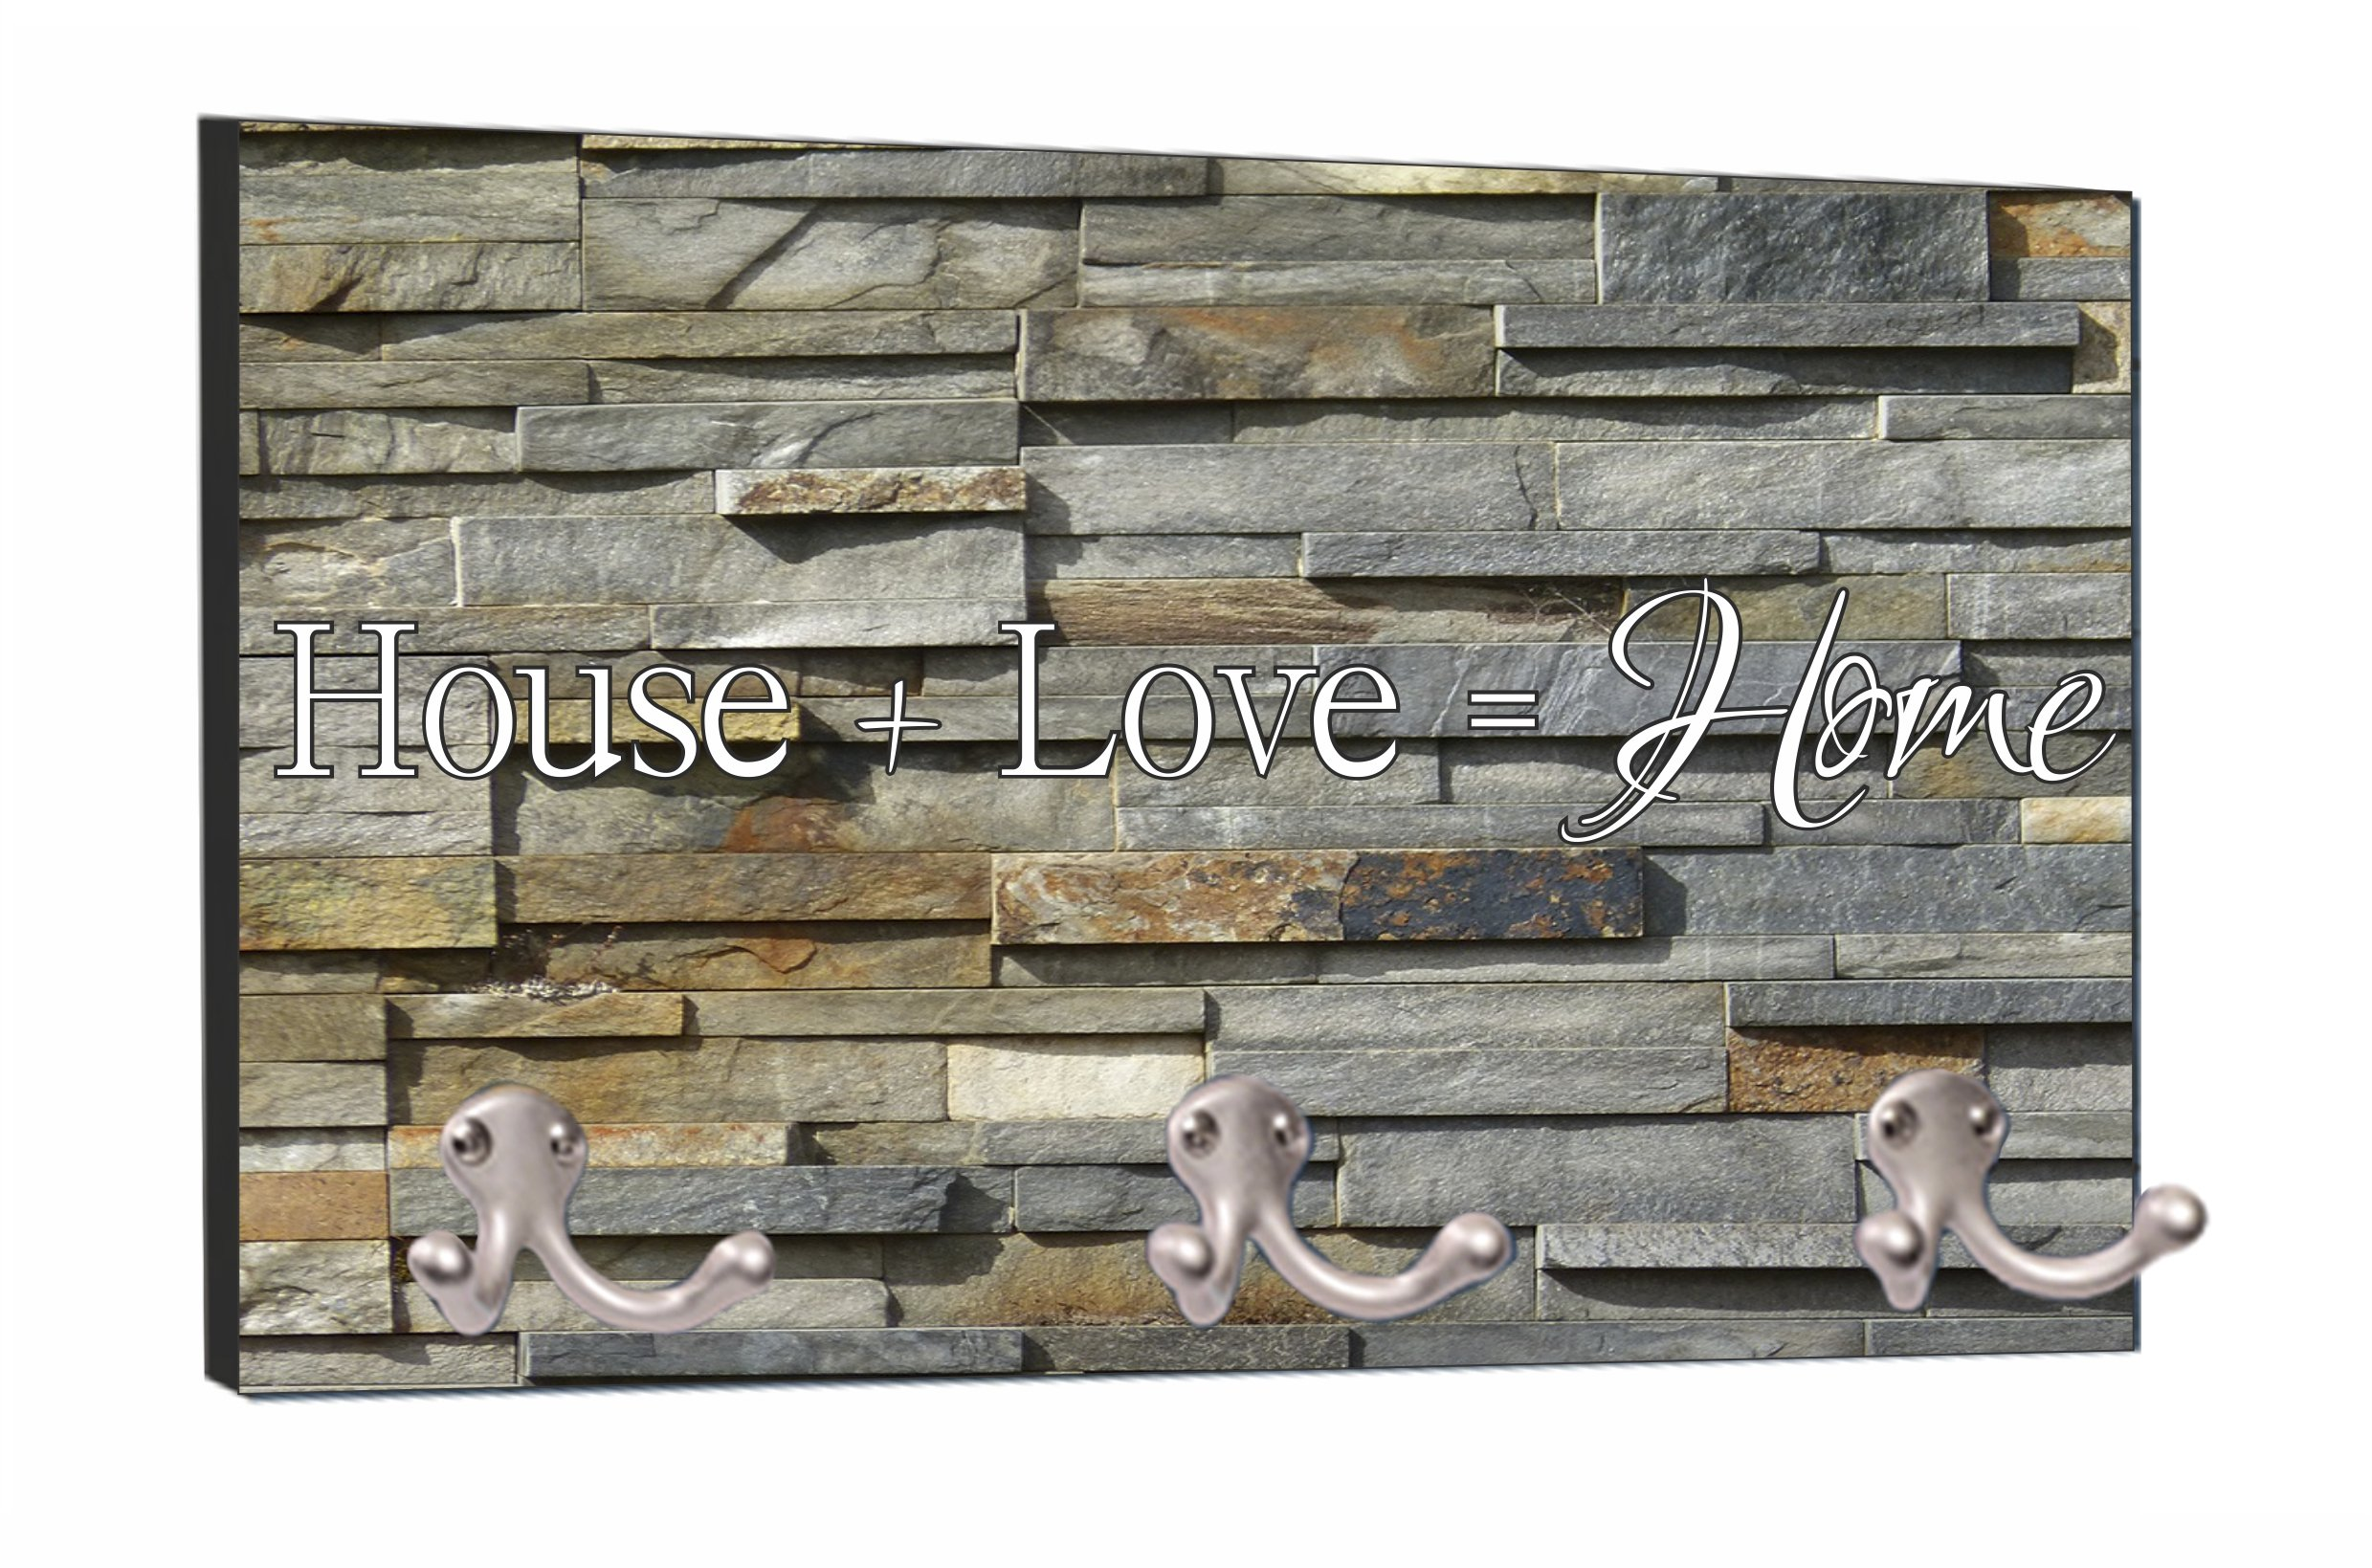 House + Love = Home - Stone Print - 8'' by 16'' Mountable Coat Hanger Rack Household Decoration with Three Double Silver Hooks